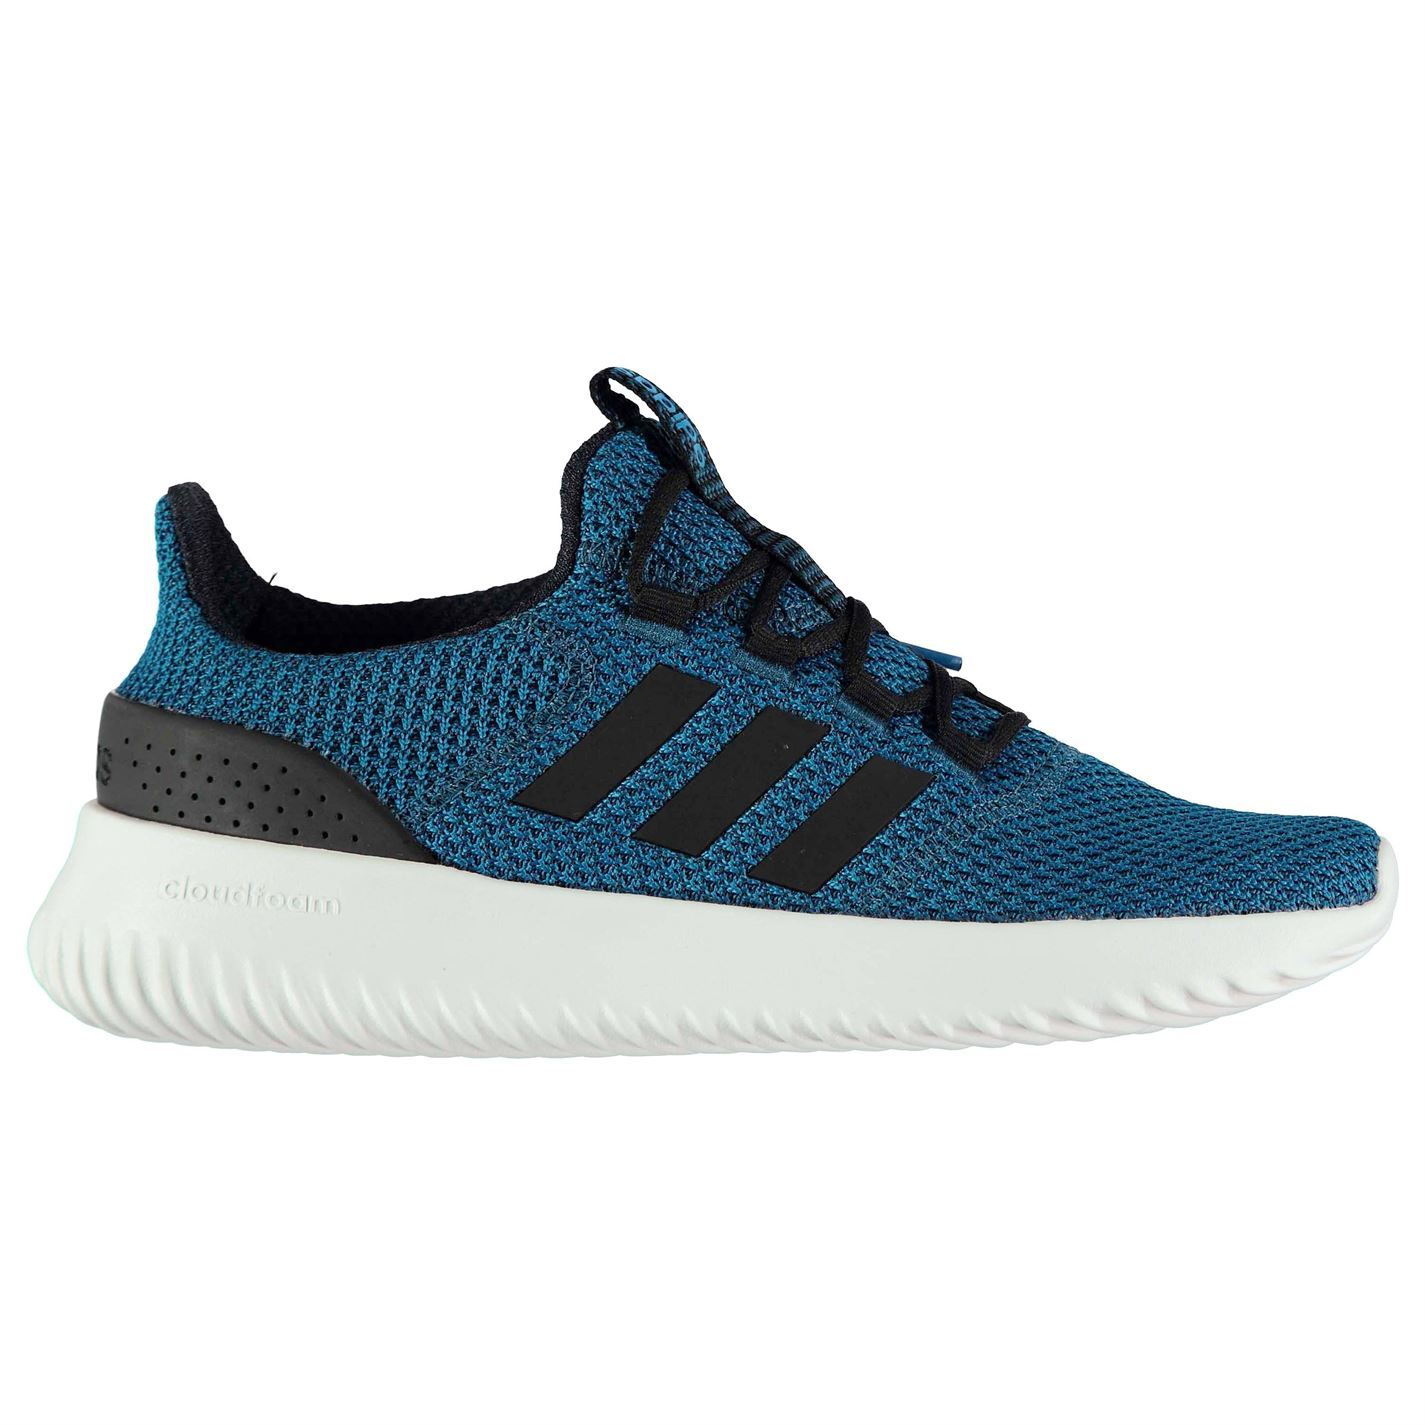 adidas Cloudfoam Ultimate Trainers Mens Blue/White Athletic Sneakers Shoes